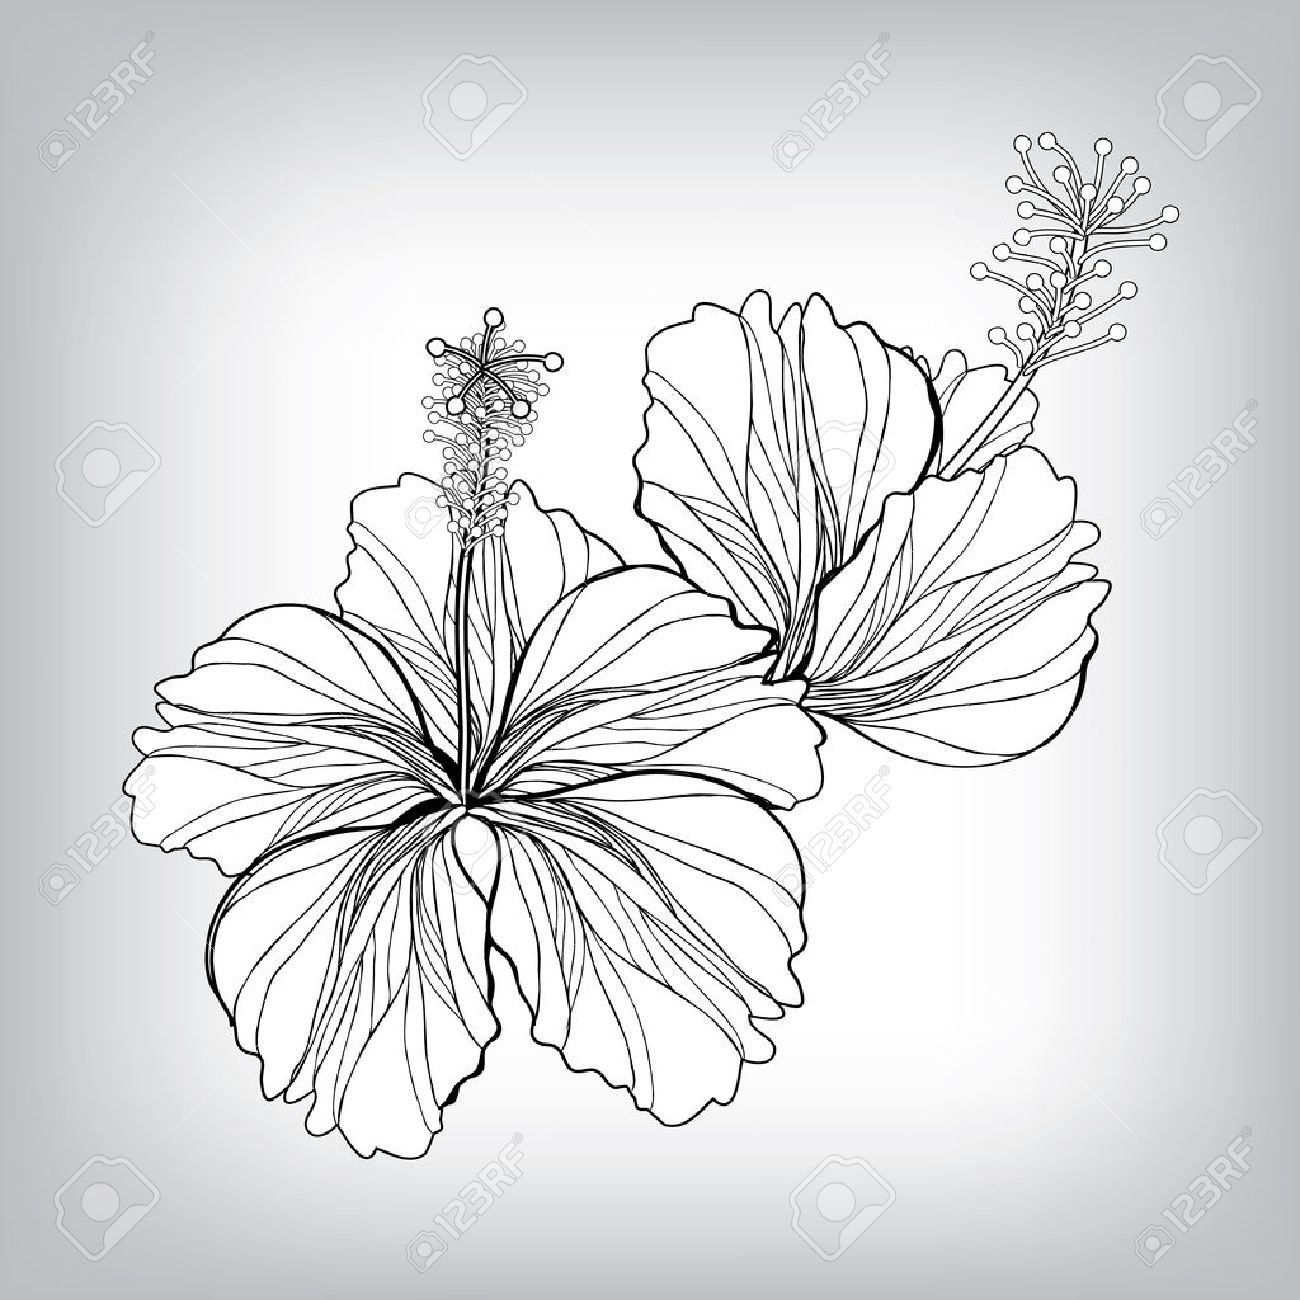 Hibiscus flower drawing at getdrawings free for personal use 1300x1300 hibiscus flower drawing elements for design eps10 vector izmirmasajfo Choice Image